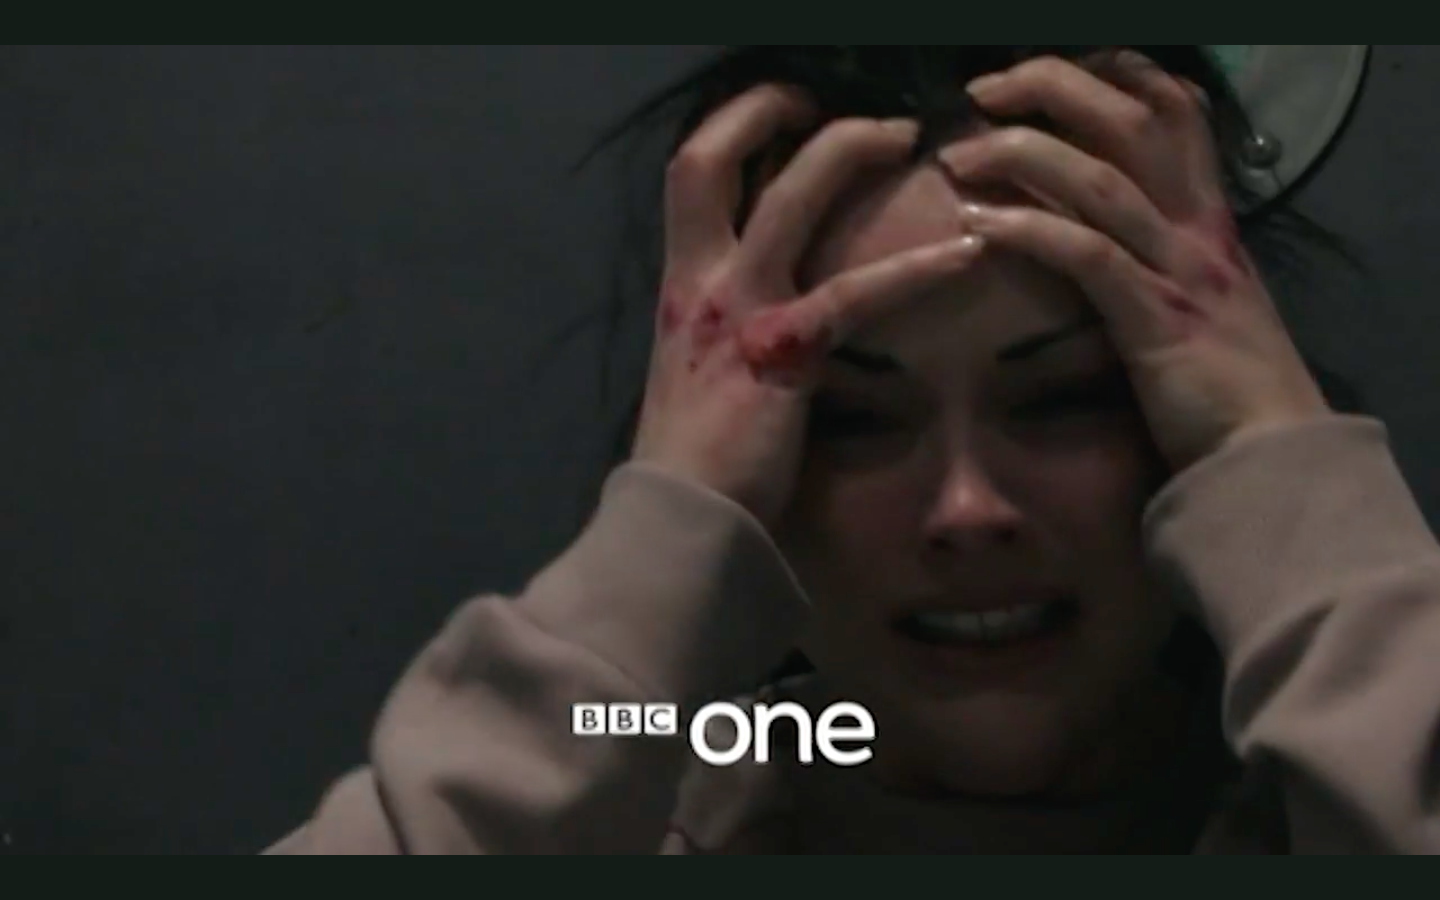 EastEnders' Whitney covered in blood in shocking new trailer